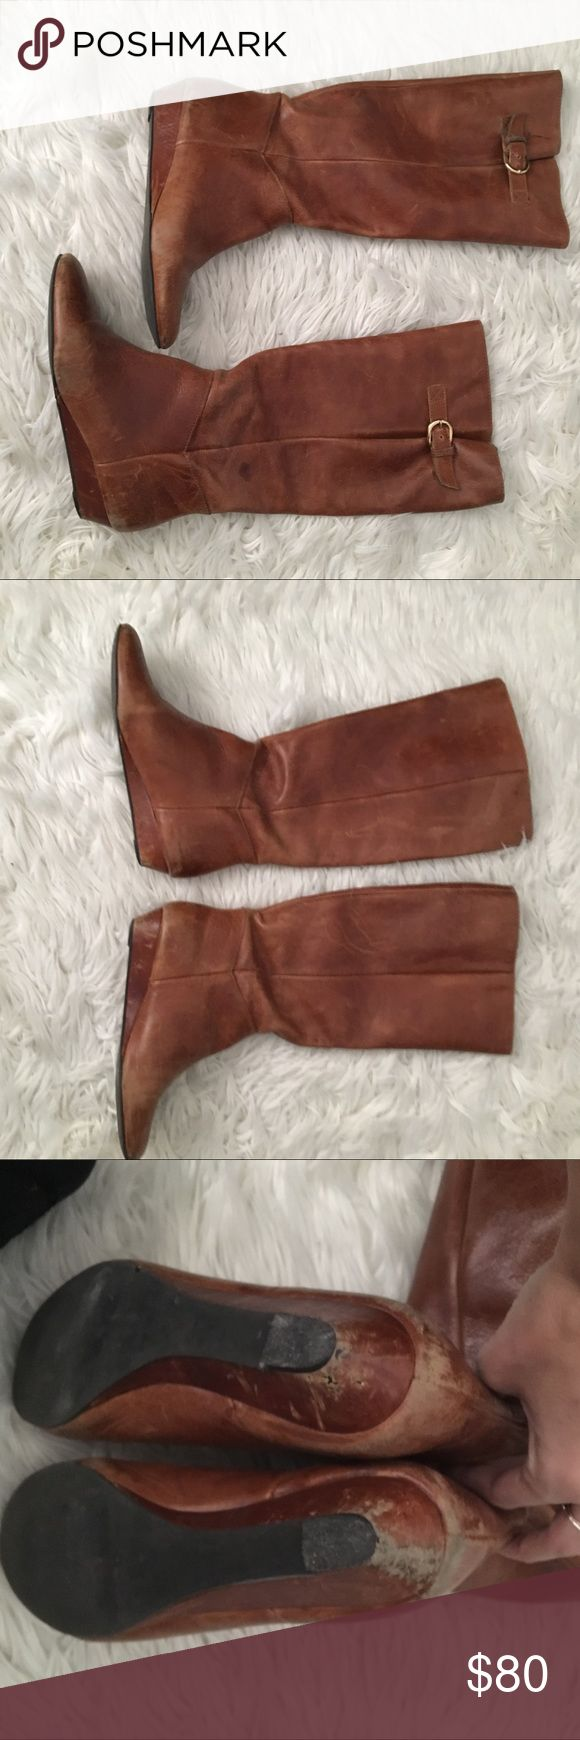 Steve Madden Intyce Boots Good condition, see photos for signs of wear Steve Madden Shoes Winter & Rain Boots